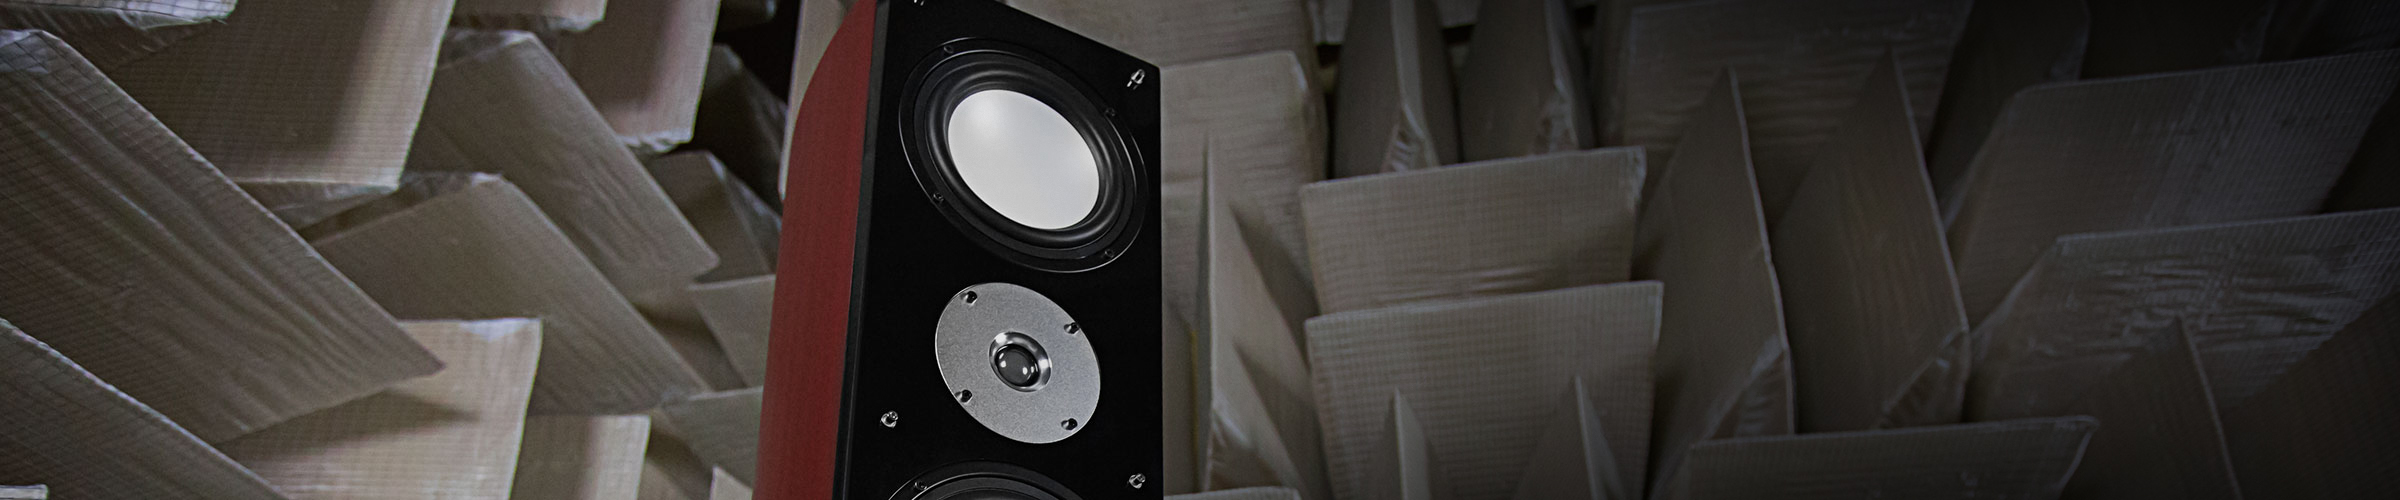 XLBPHTB-DW-KIT speakers lifestyle